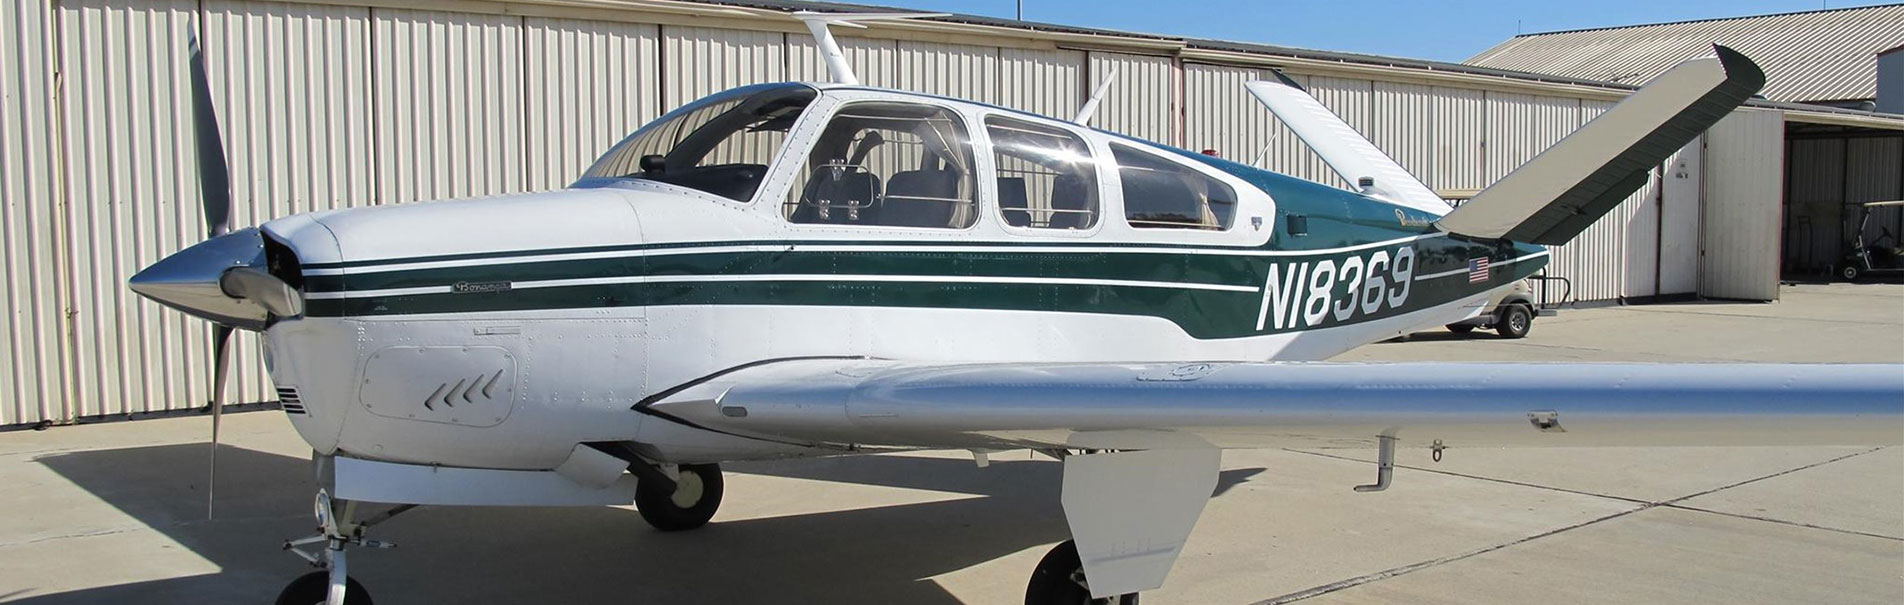 Arrell Aircraft Sales: Beechcraft Parts, Beechcraft Aircraft Parts